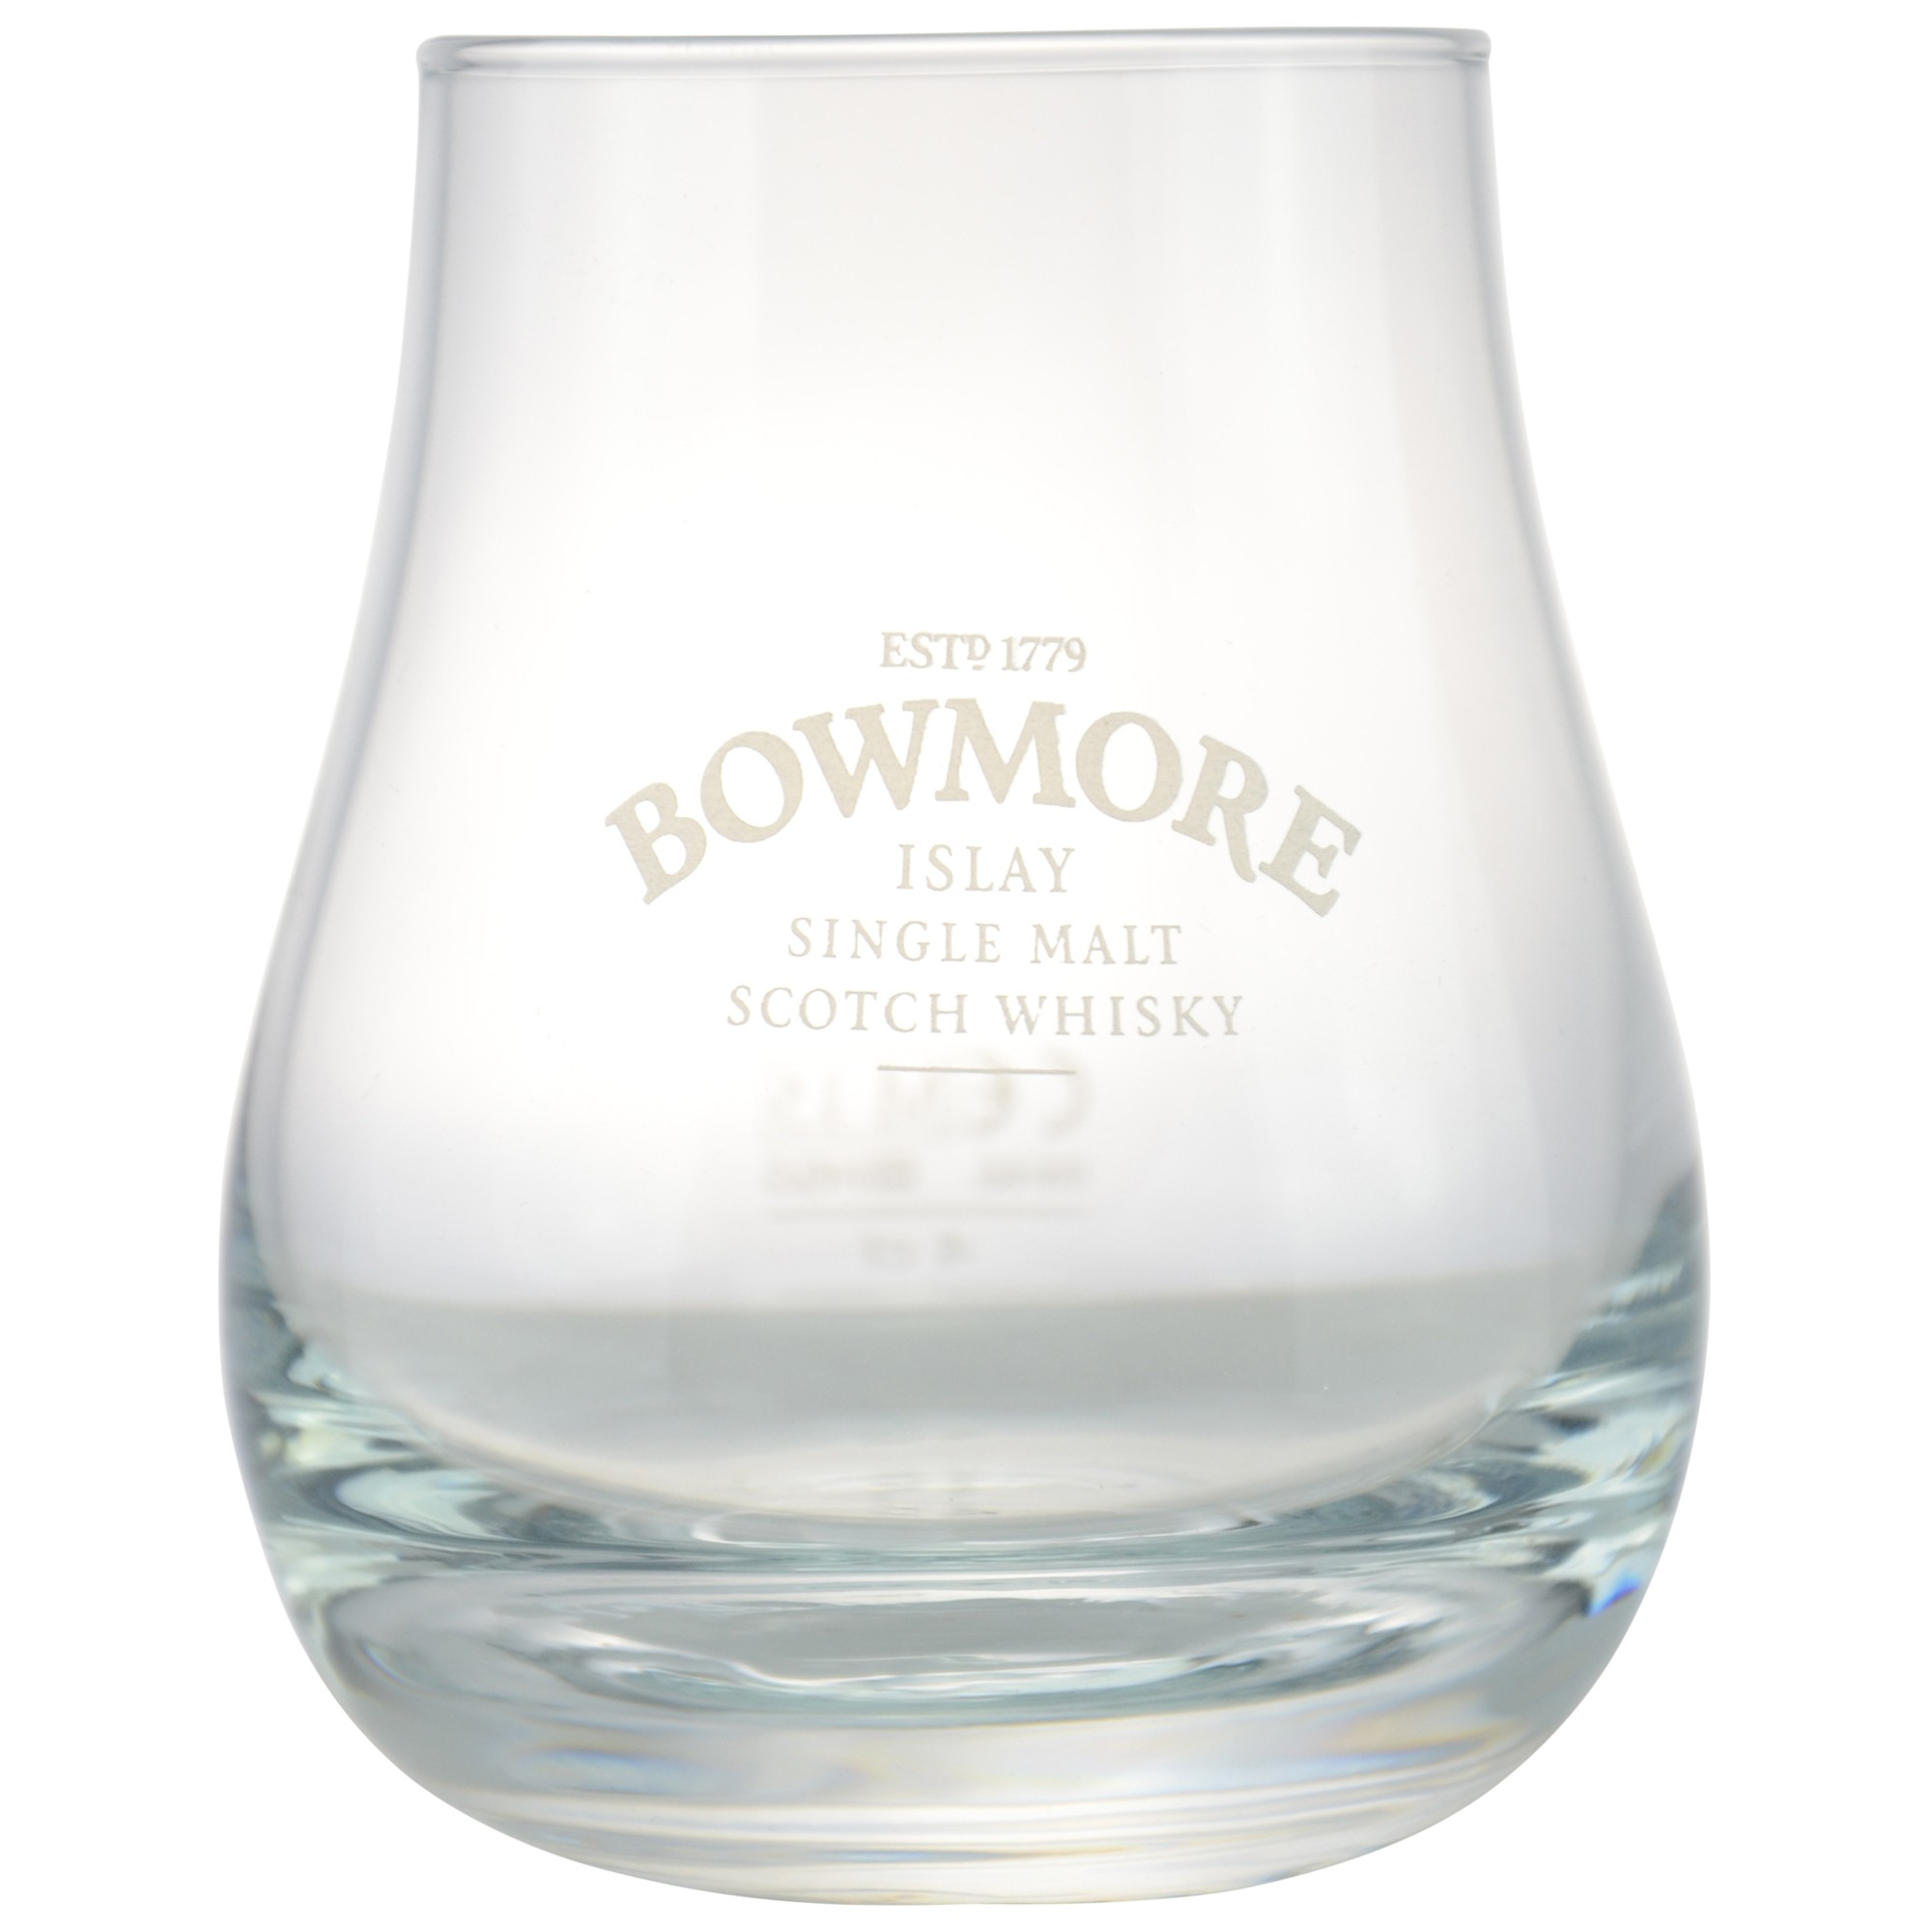 tumbler whisky glas mit bowmore motiv hier kaufen. Black Bedroom Furniture Sets. Home Design Ideas